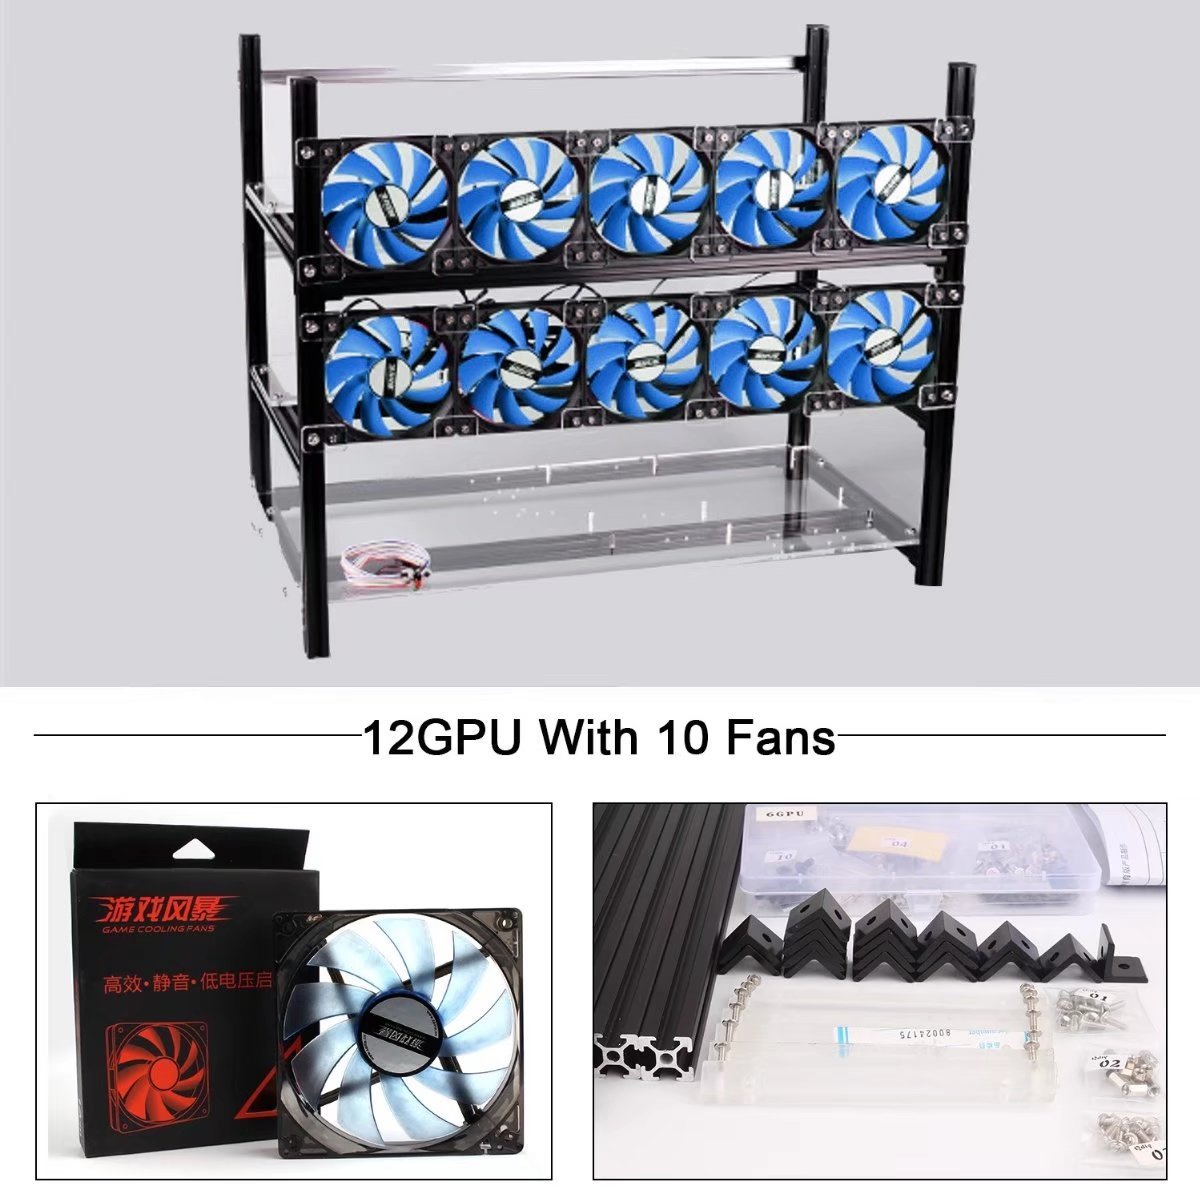 Aluminum 12 GPU Mining Rig With 10 Case Fan, Stackable Open Air Frame Miner Case For ETH/ETC/ZCash/Cryptocurrency(Blue LED Fans,Black)